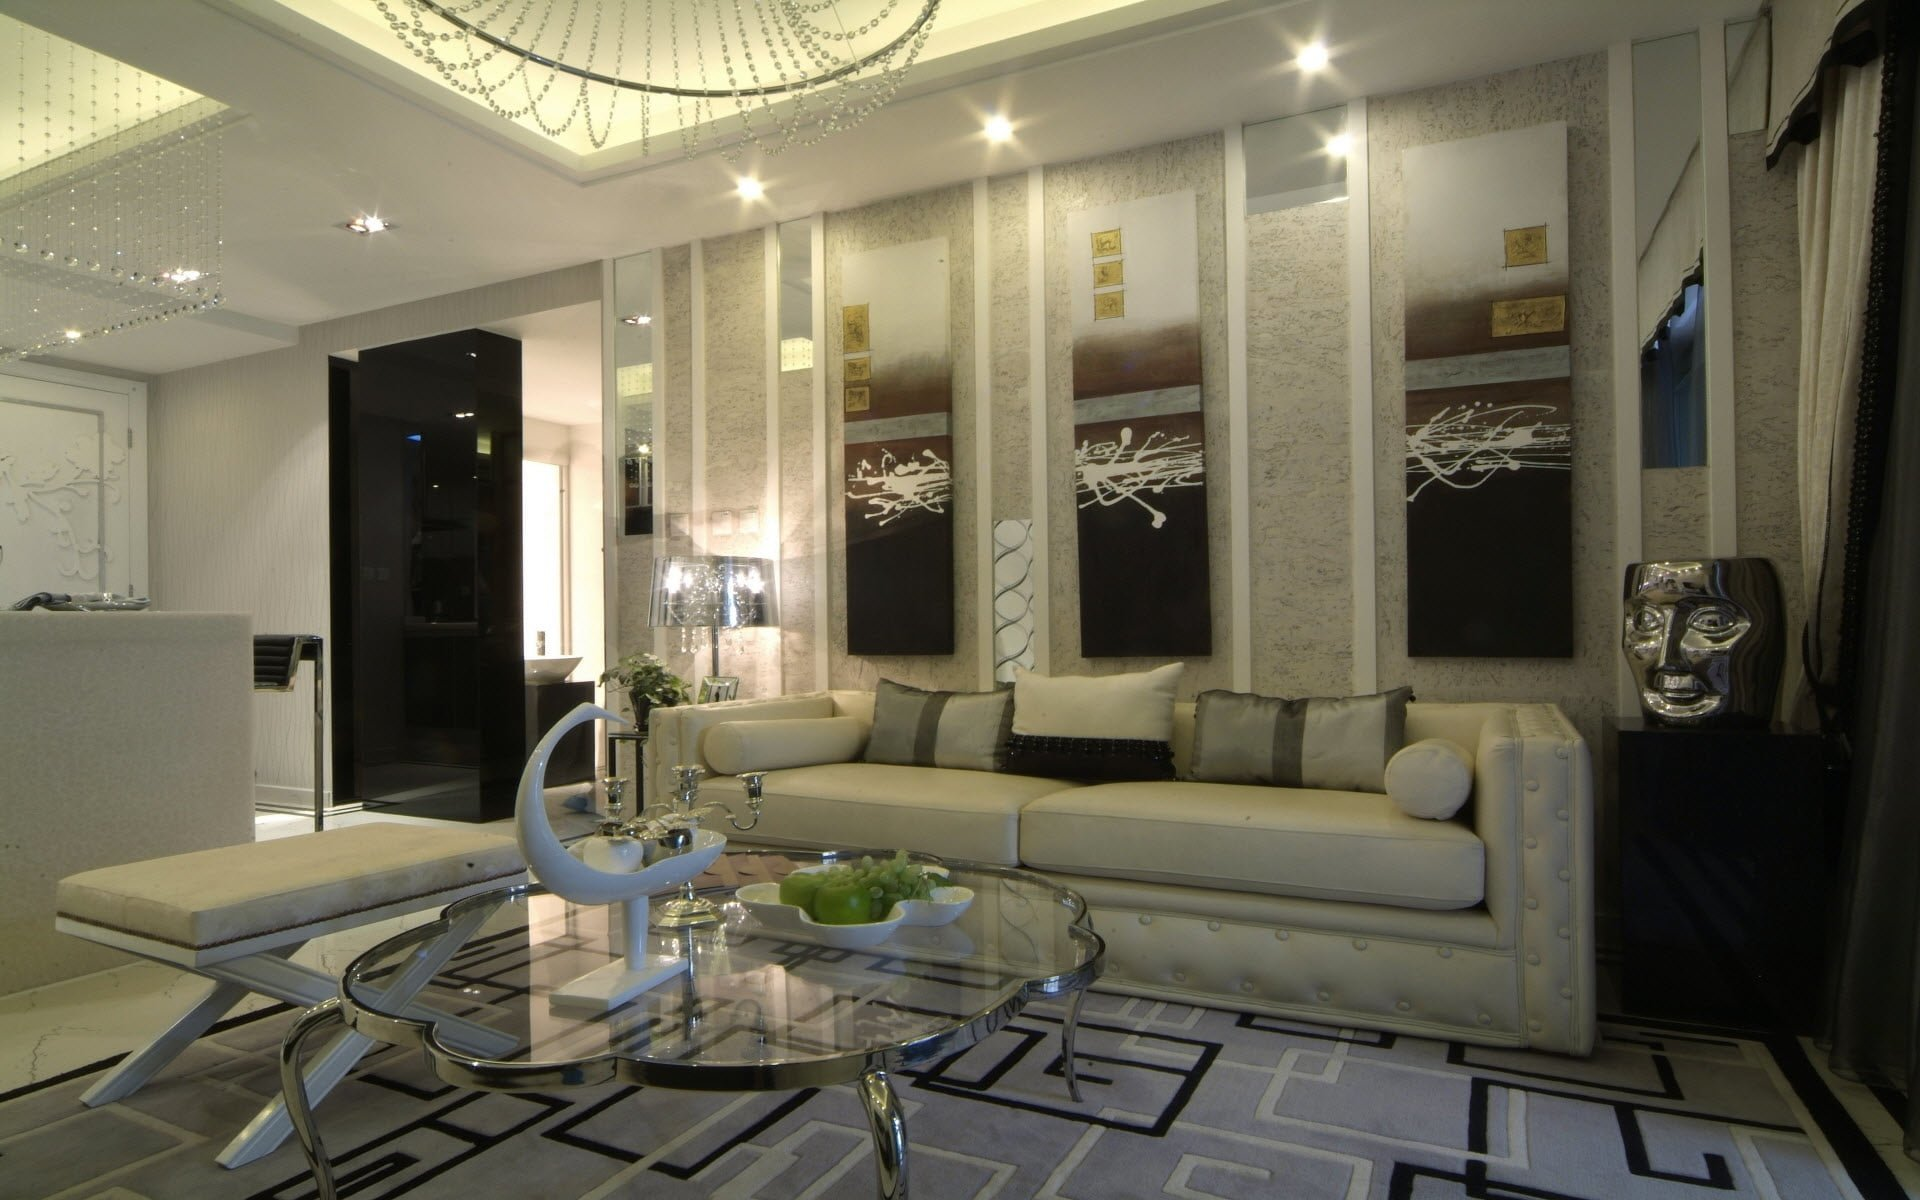 I dekorasyon 9 manzara resimleri - Luxurious interior design with modern glass and modular metallic theme ...